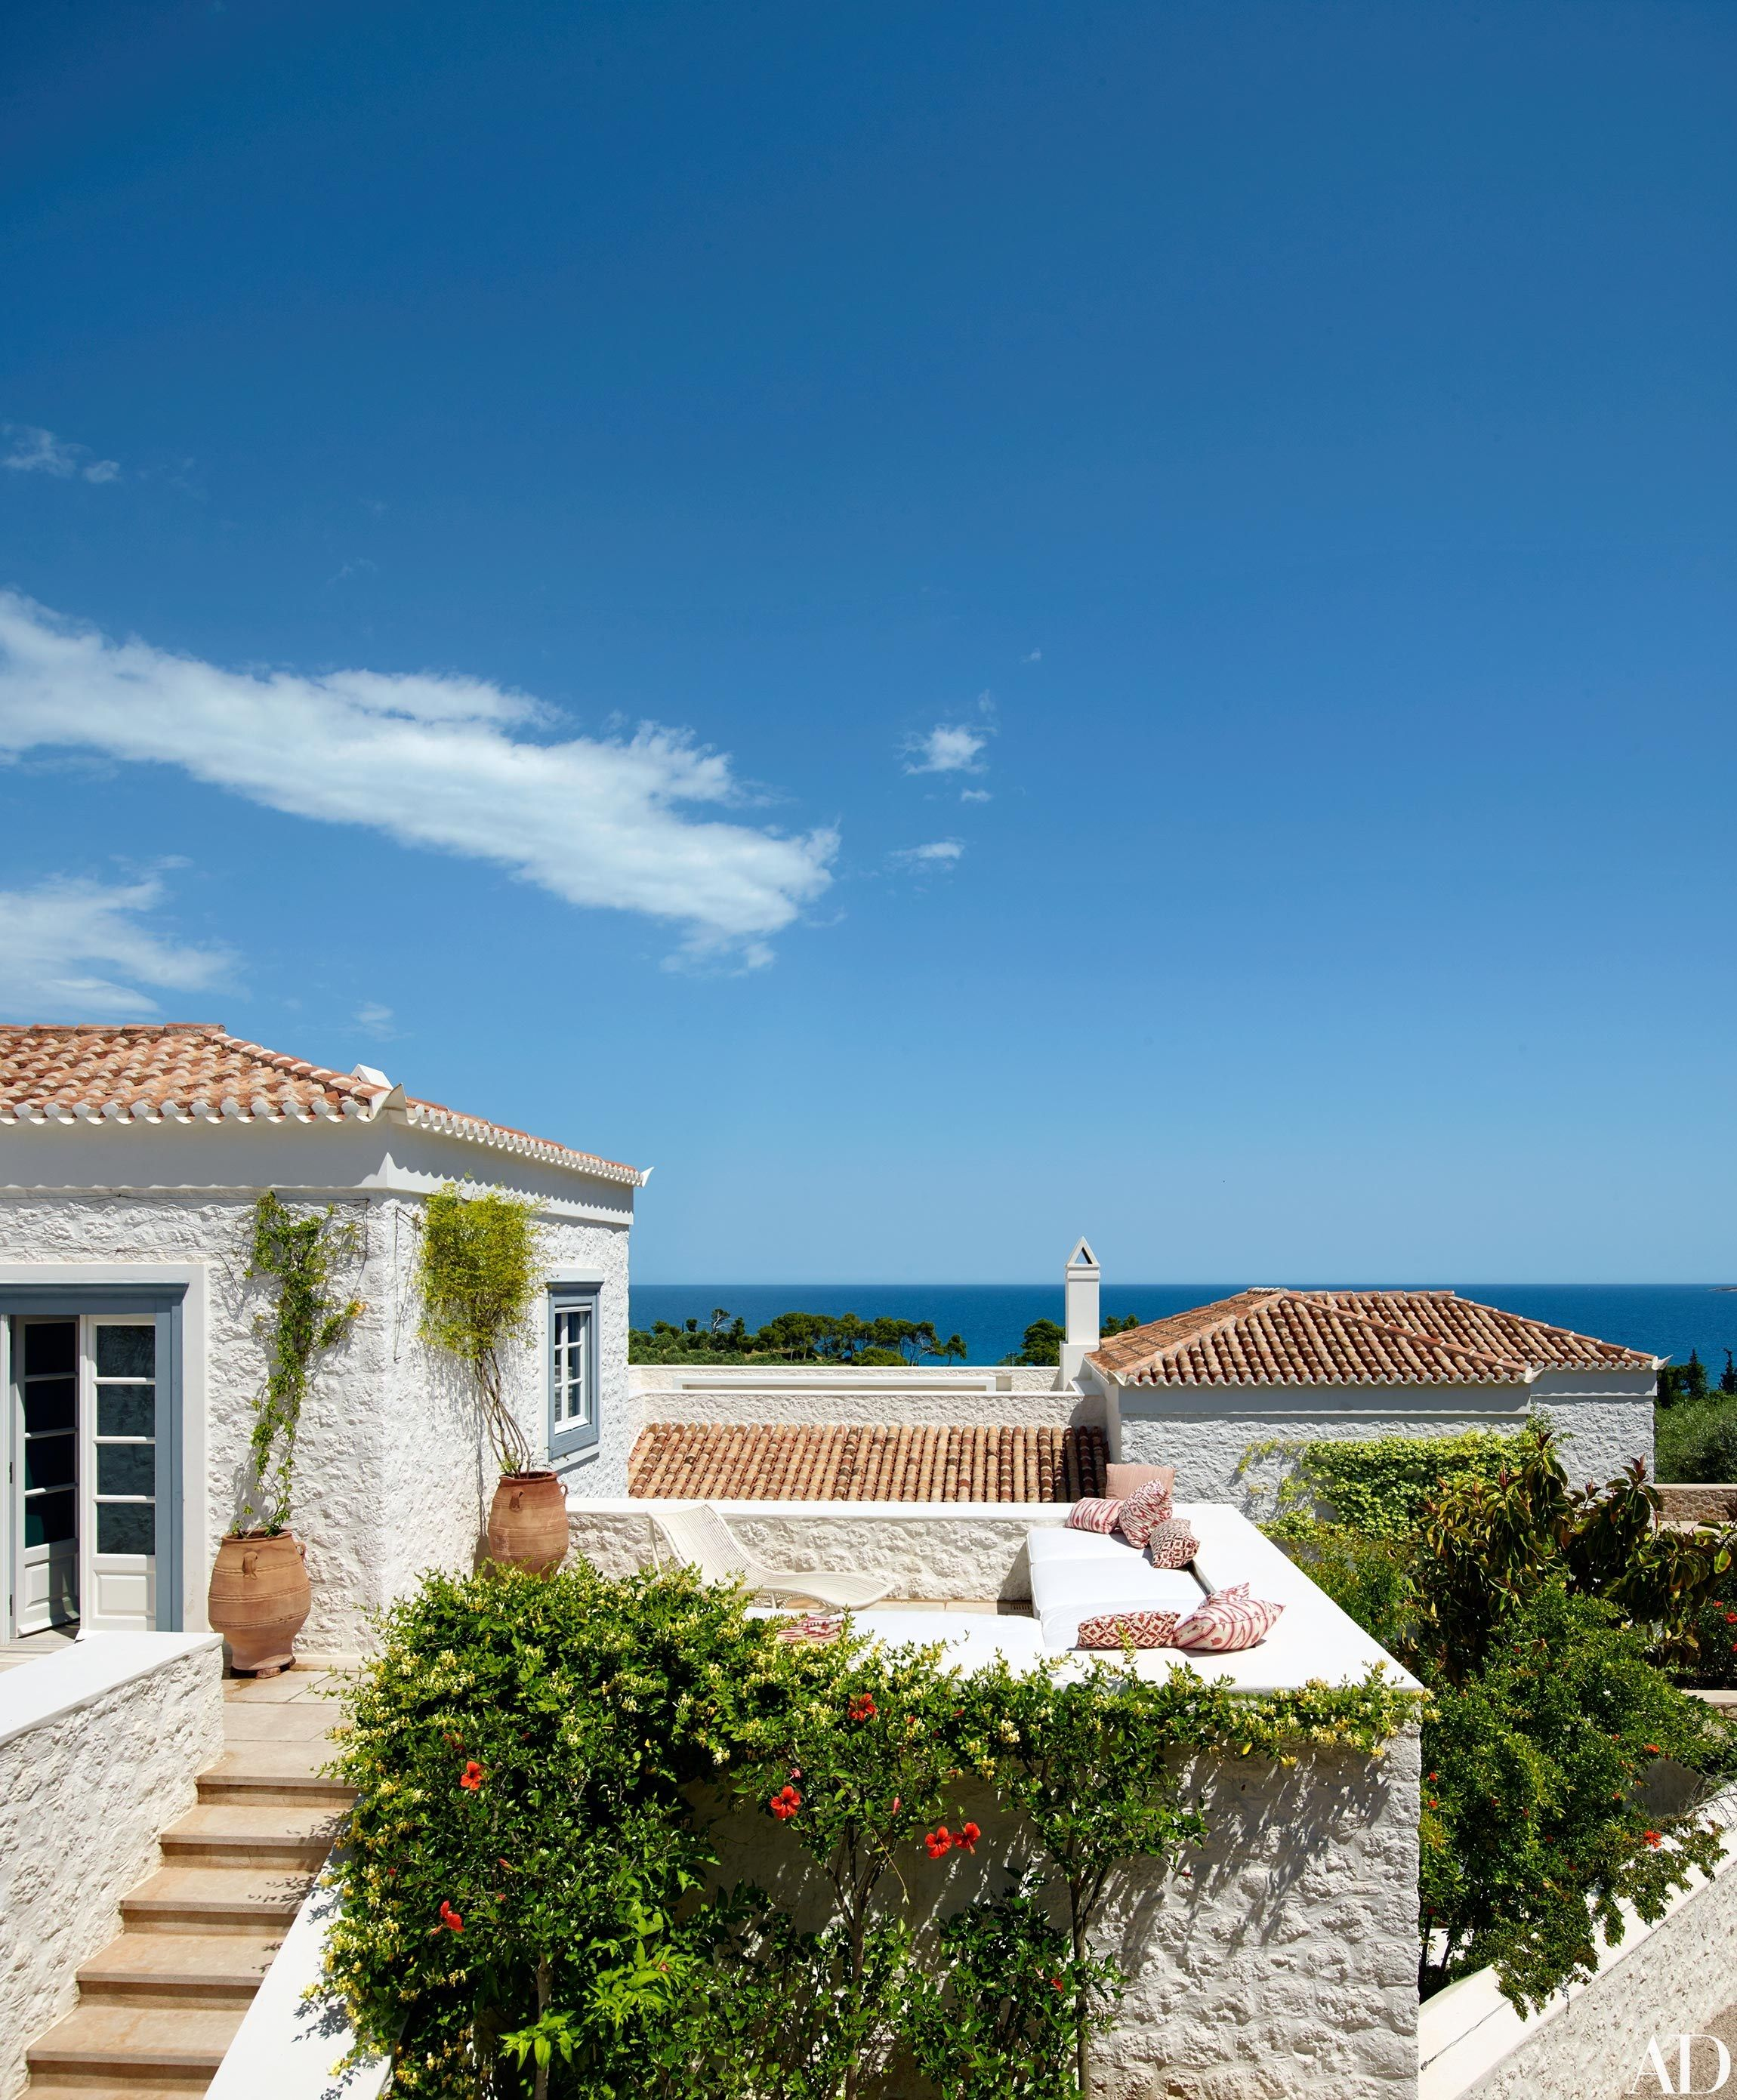 A Compound Of Villas In The Greek Islands Is Transformed